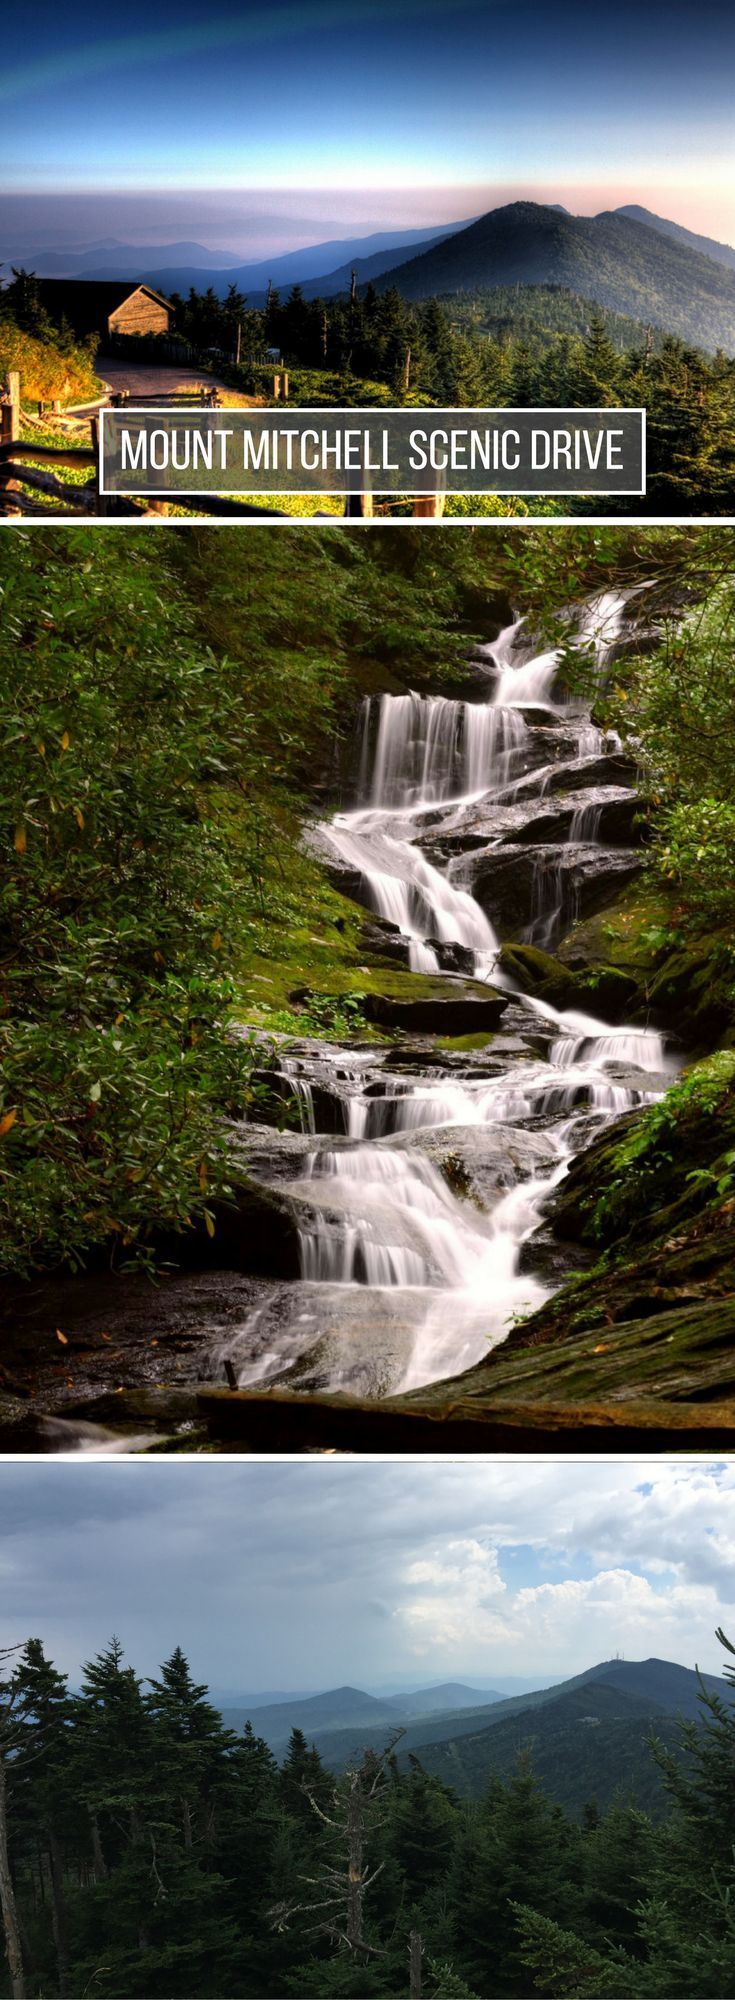 Just off the Blue Ridge Parkway is another incredible scenic byway